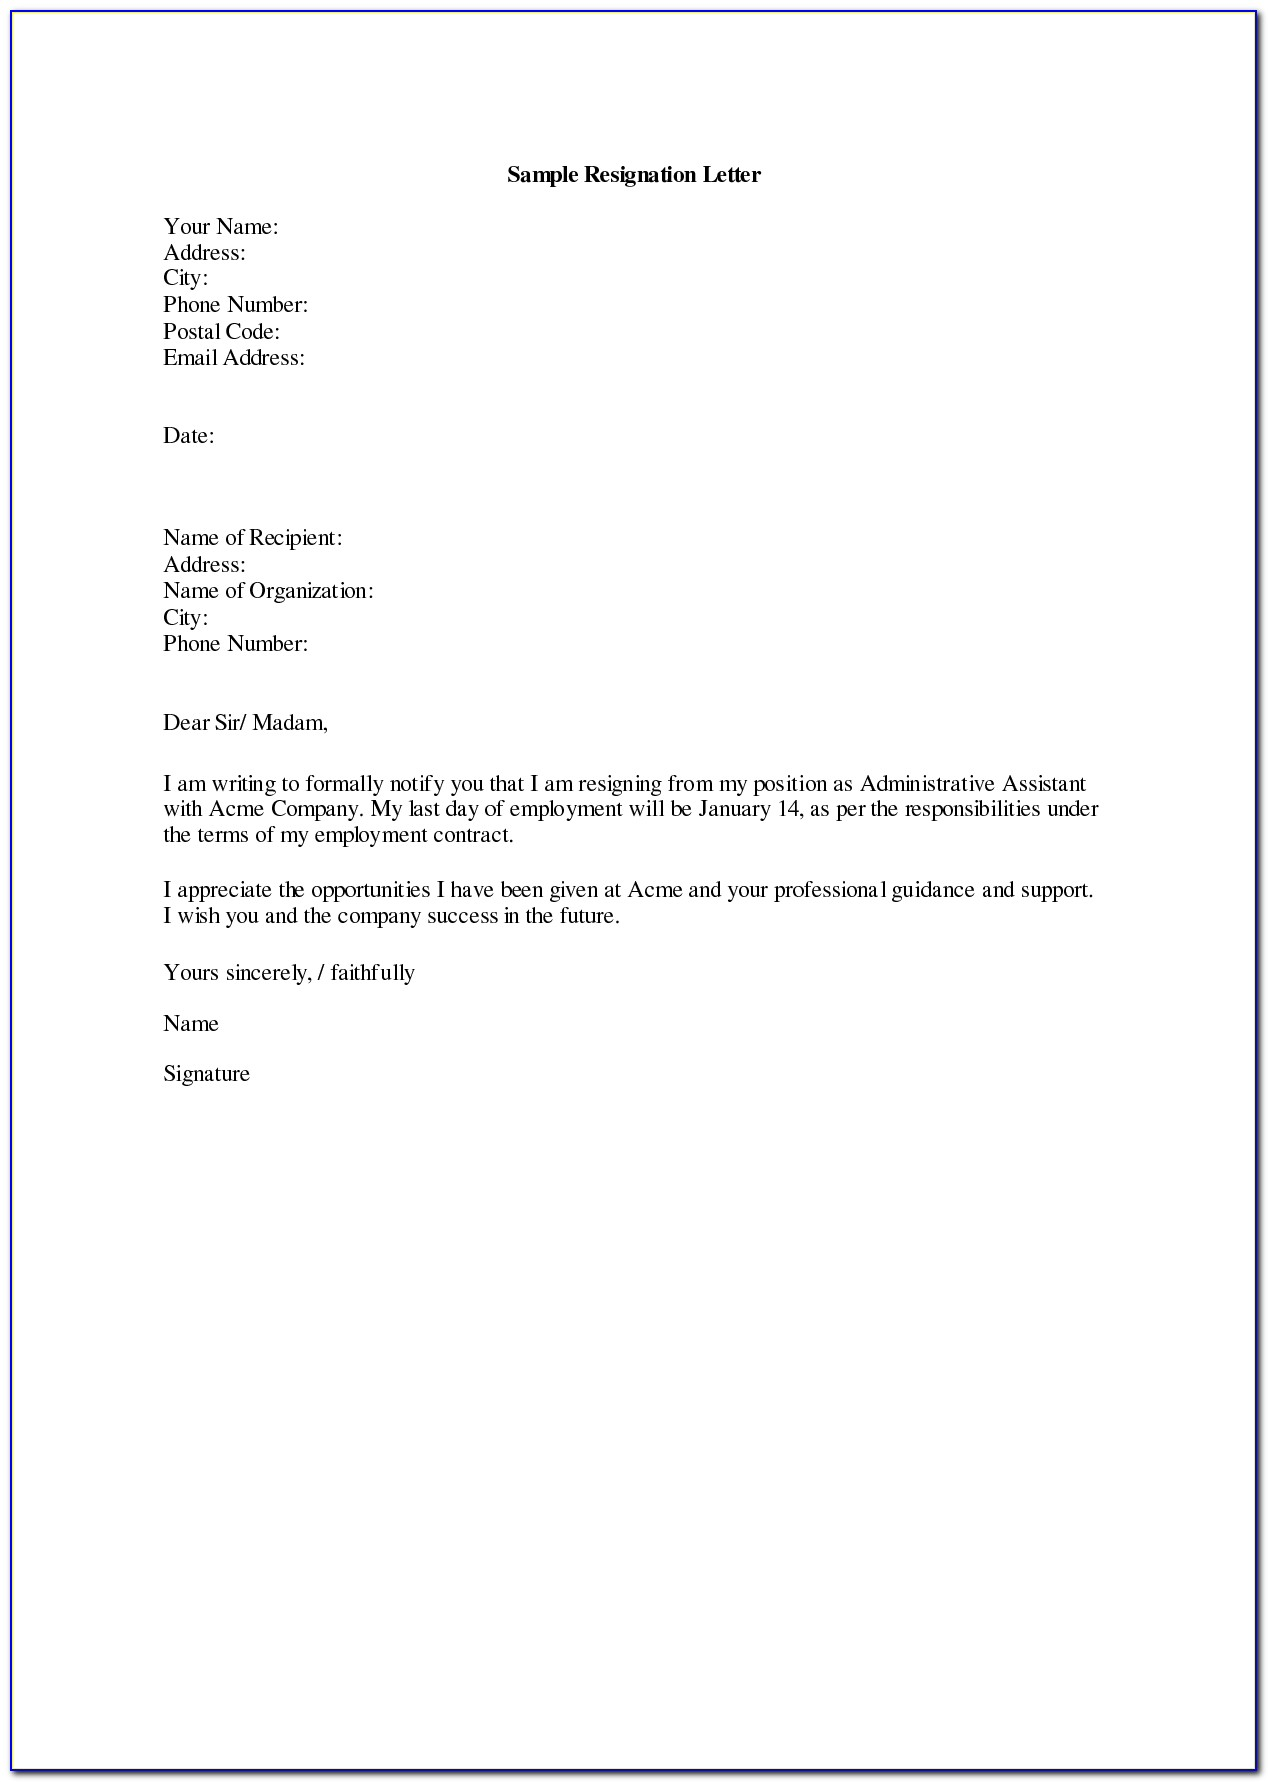 Letter Of Resignation Template Email